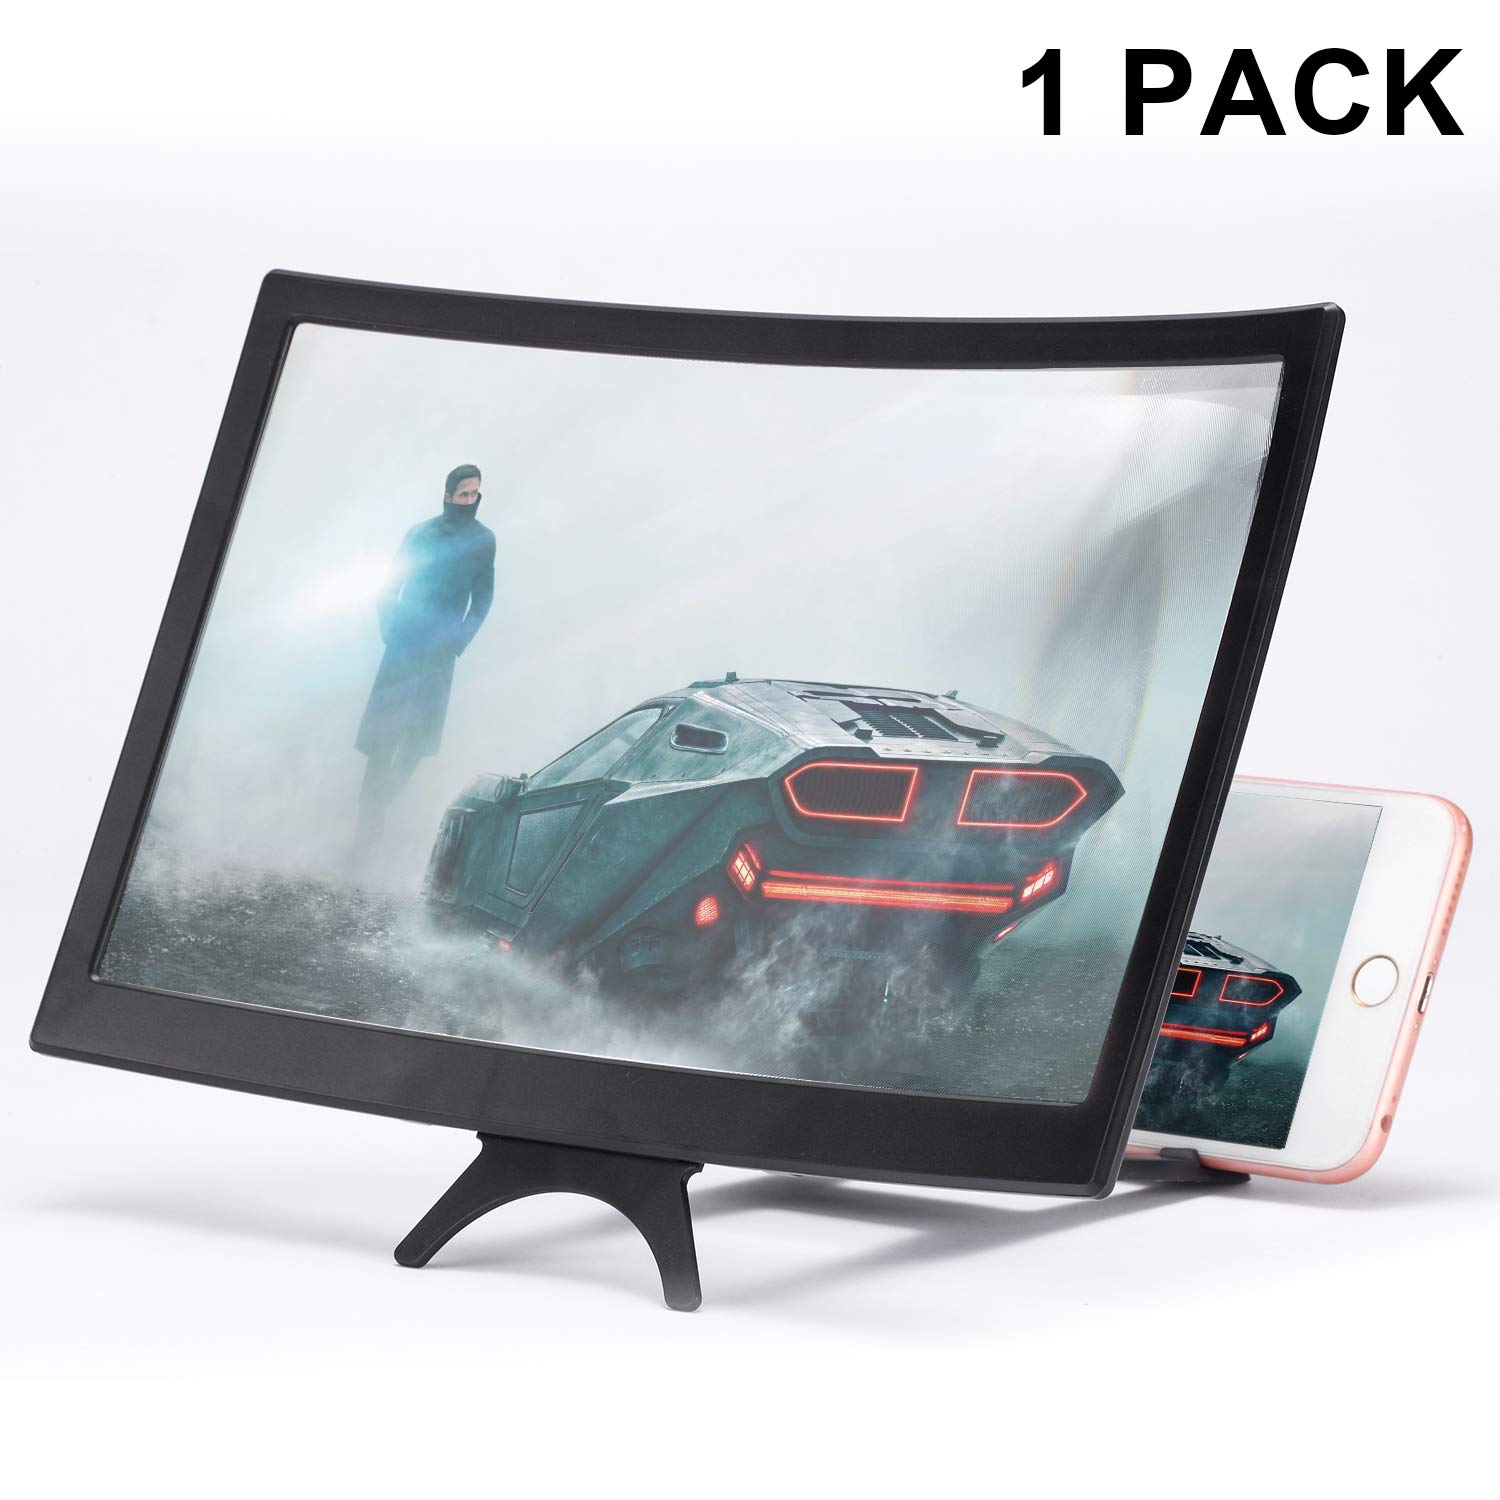 Solid Wood Grain Foldable Mobile Phone Screen for All Smart Phone Model and Gaming KOBWA 12 Screen Magnifier for Smartphone Mobile Phone 3D Magnifier Projector Screen for Movies Videos